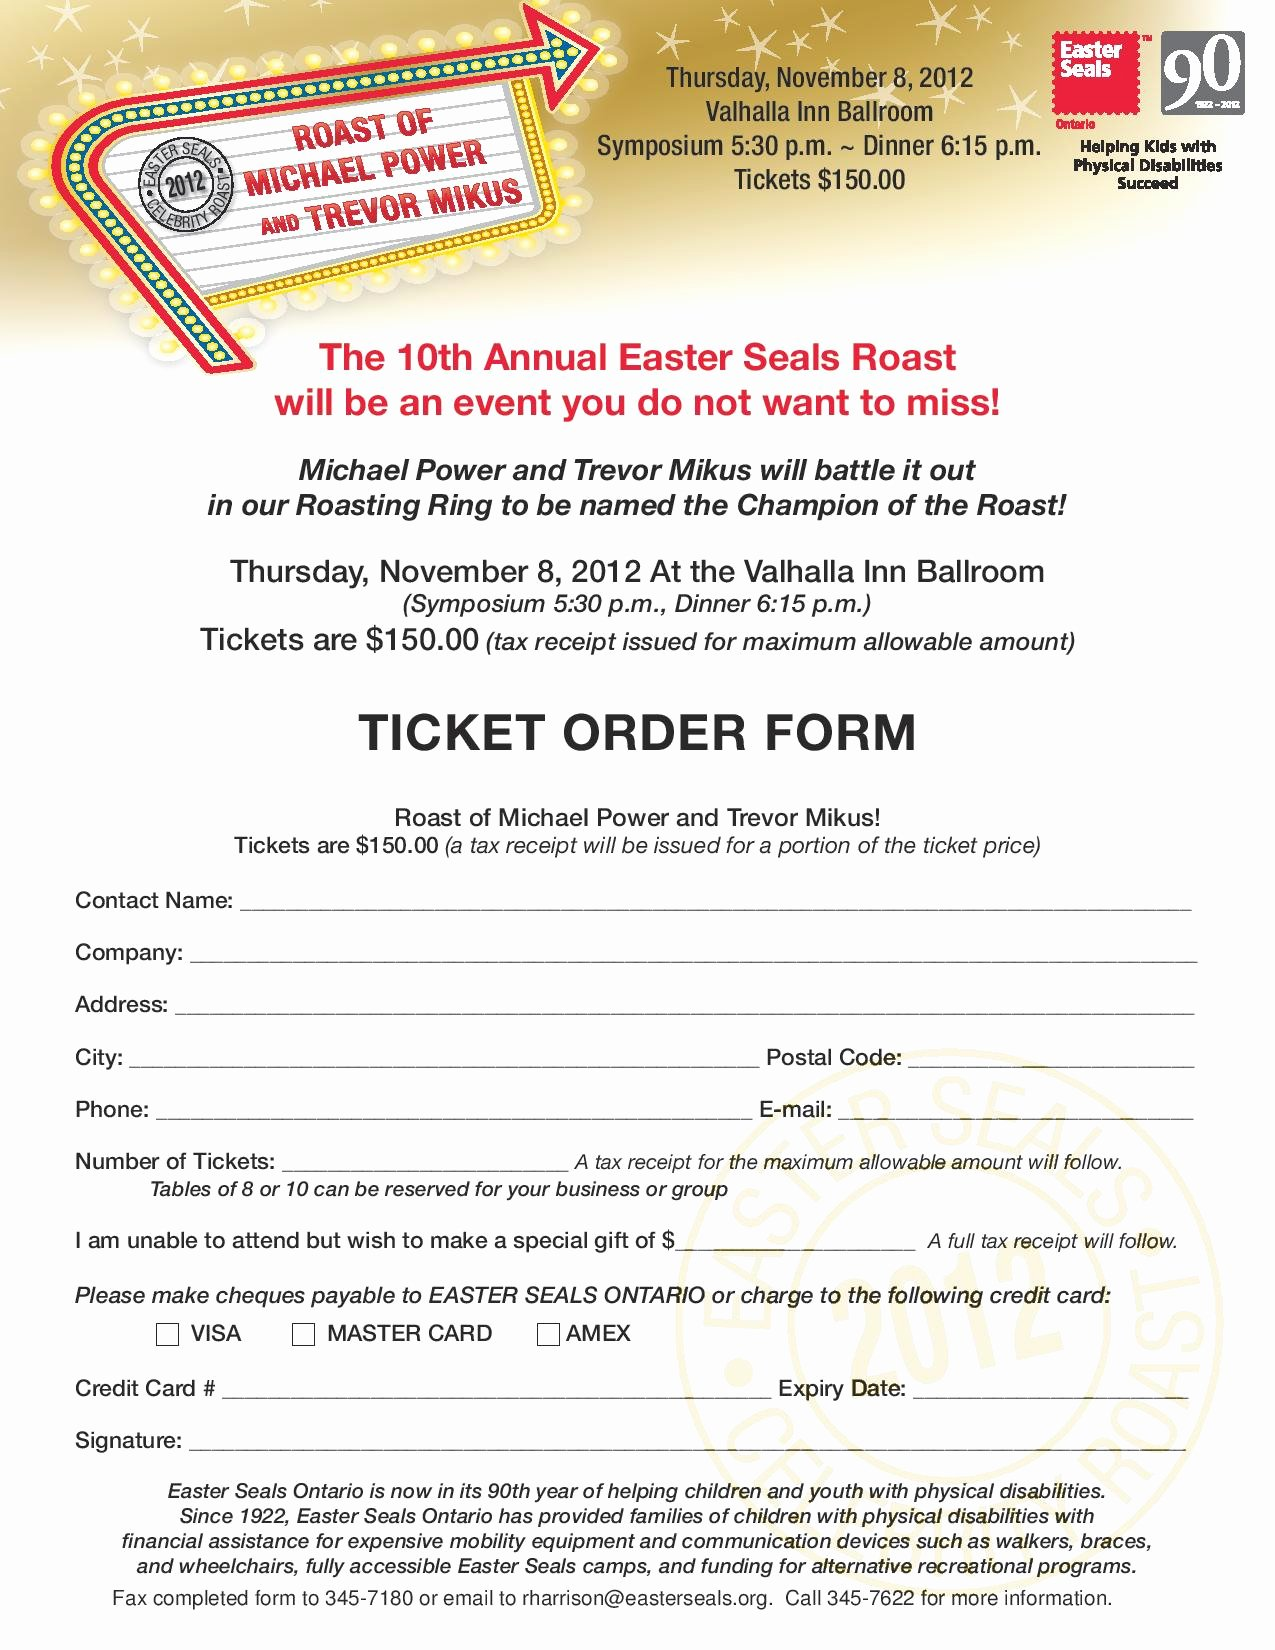 Ticket order form Template Unique Roast Ticket order form Page 001